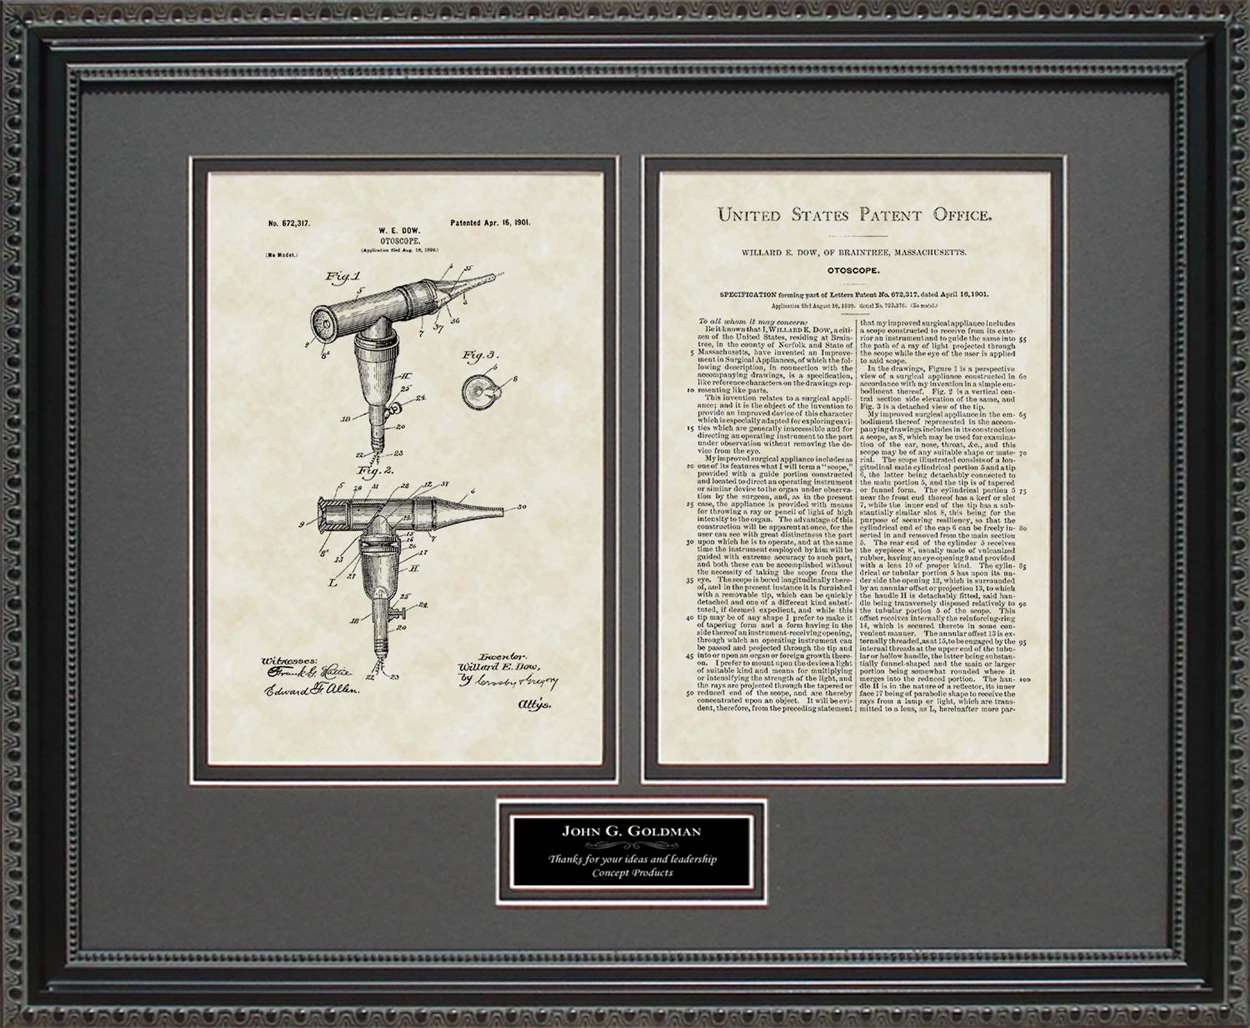 Personalized Otoscope Patent, Art & Copy, Dow, 1901